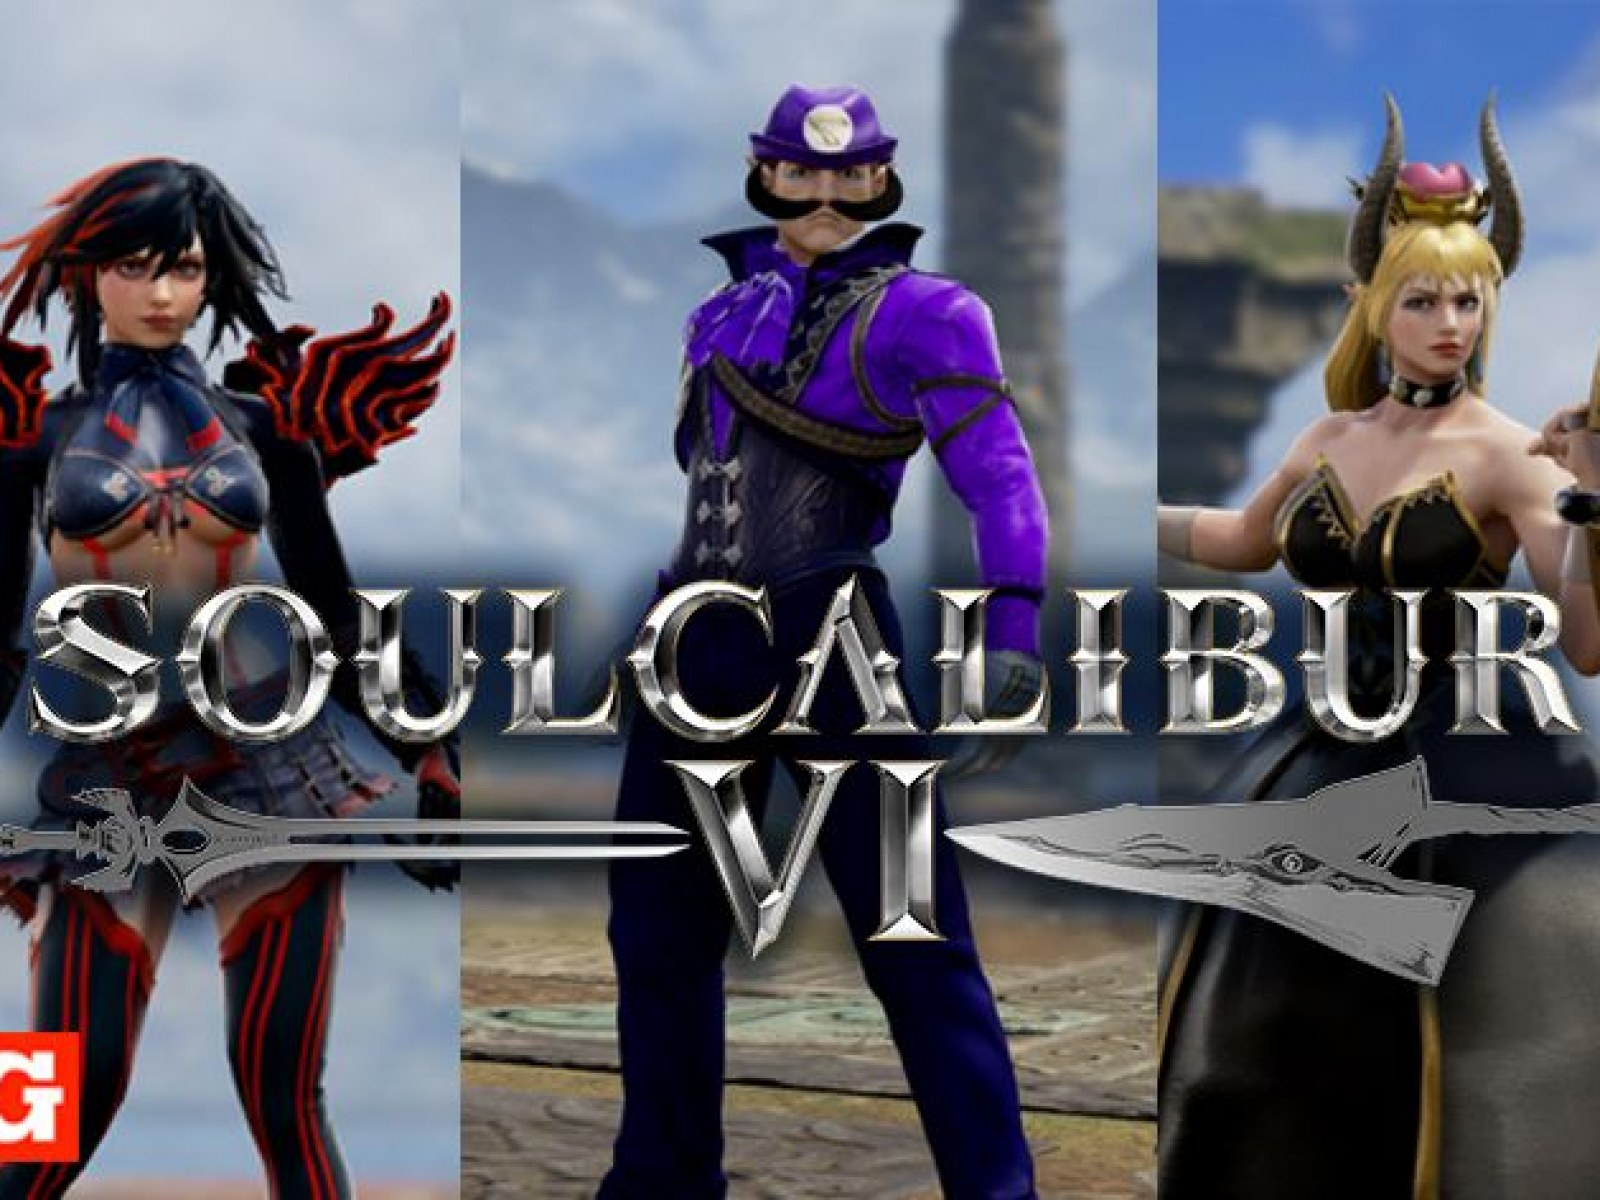 SoulCalibur VI' Character Creation Lets Players Make